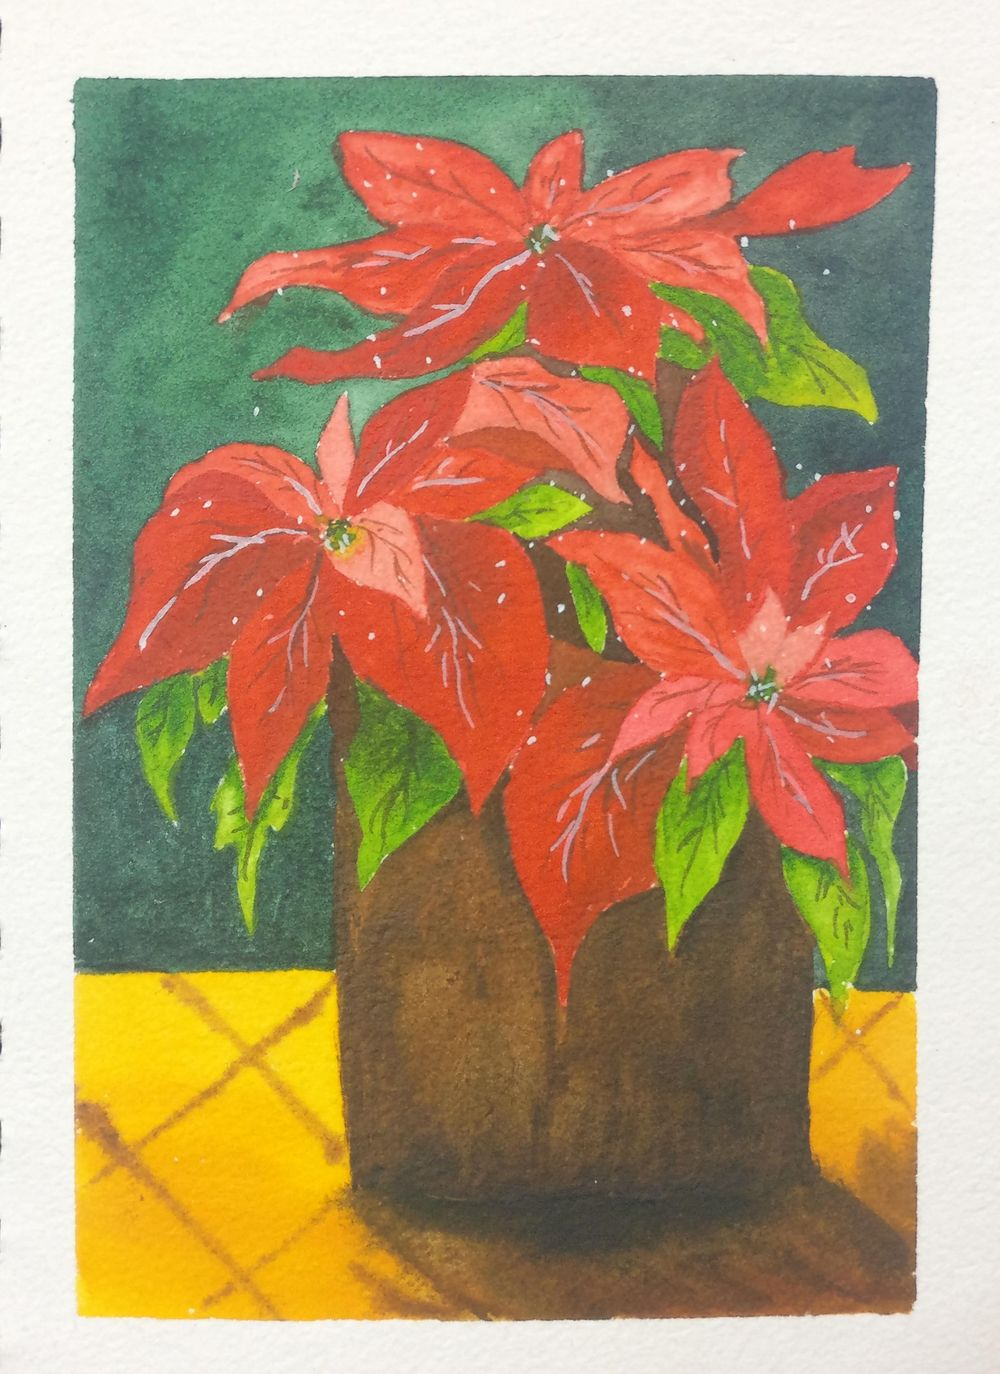 Christmas with watercolors - image 19 - student project